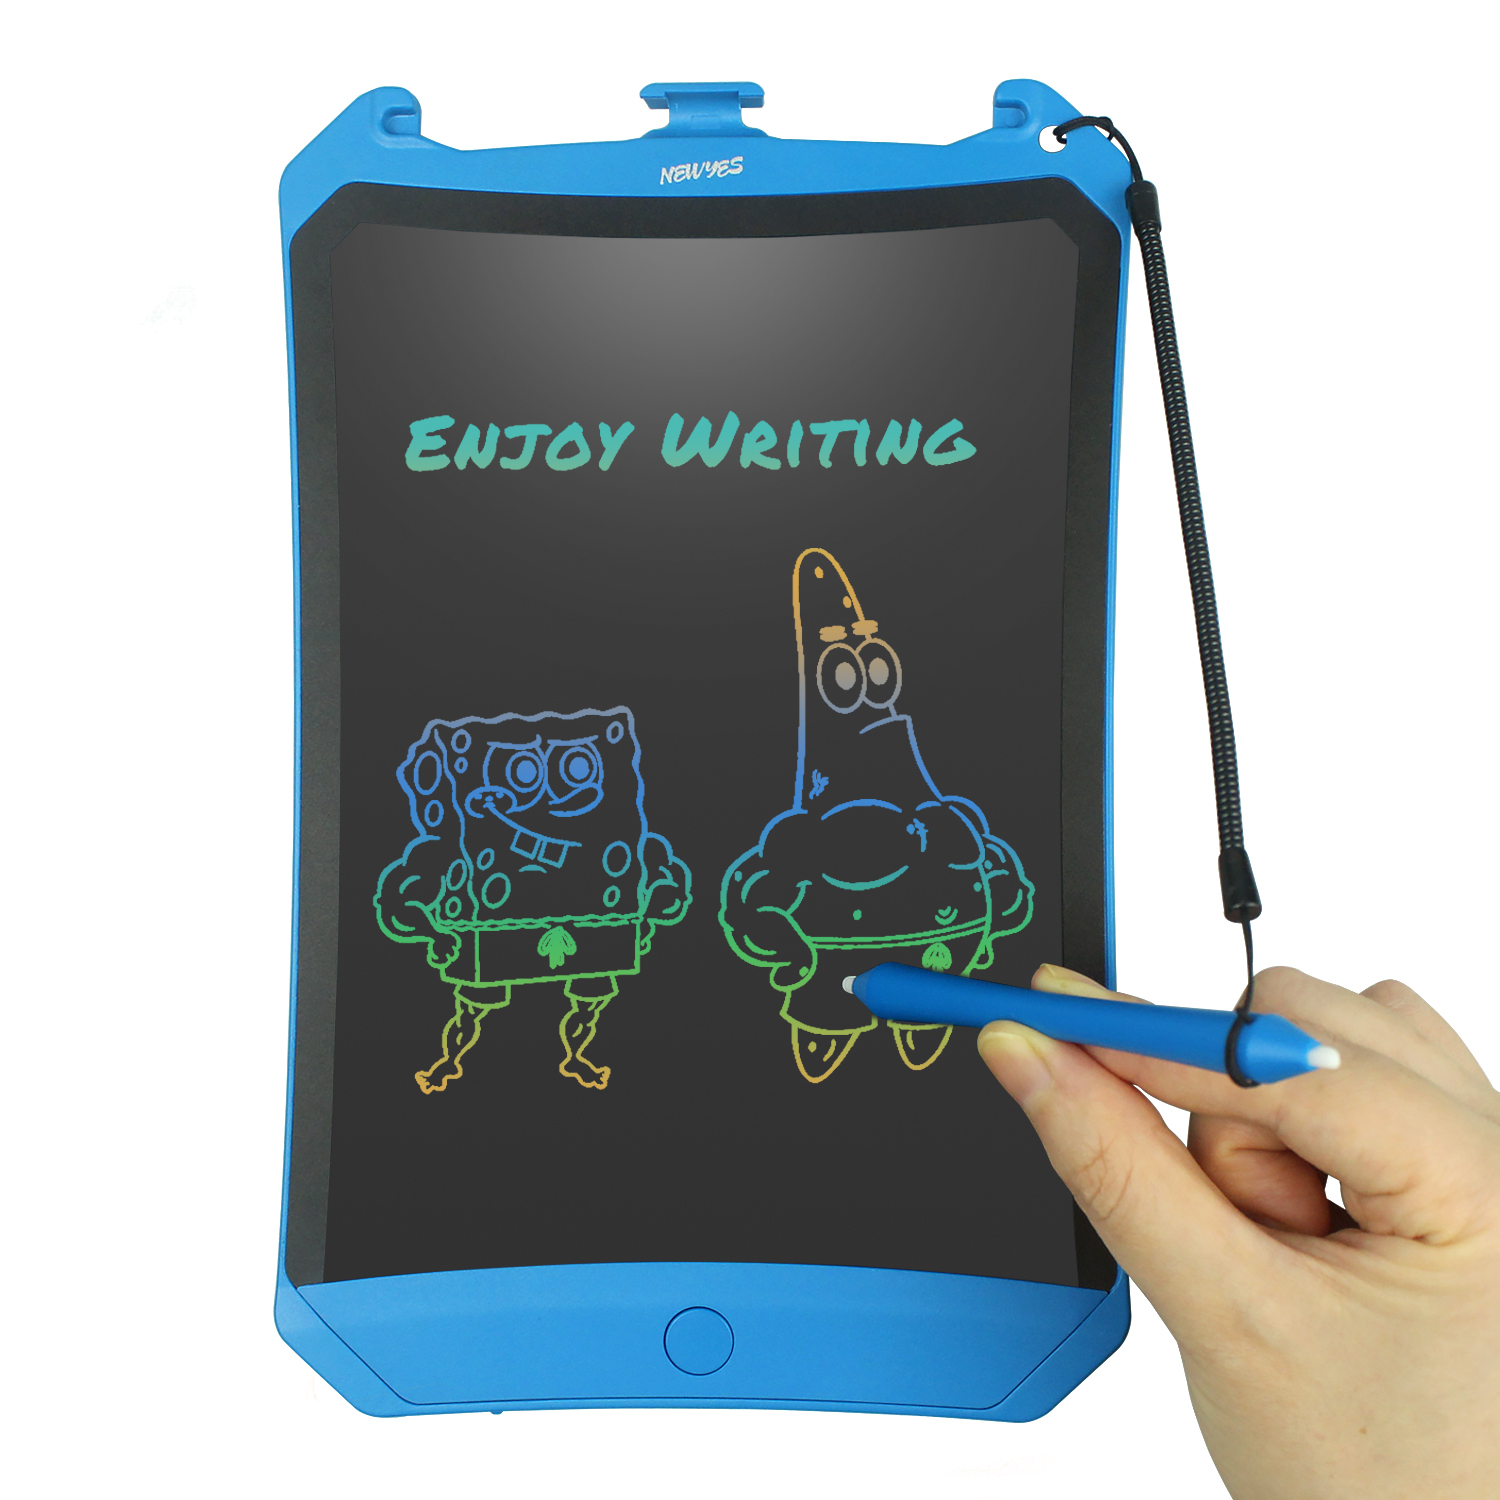 NEWYES 8.5inch LCD Writing Tablet Drawing Notepad Electronic Handwriting Painting Office Pad Multi-color Screen Lock Key One-click Eraser Toys